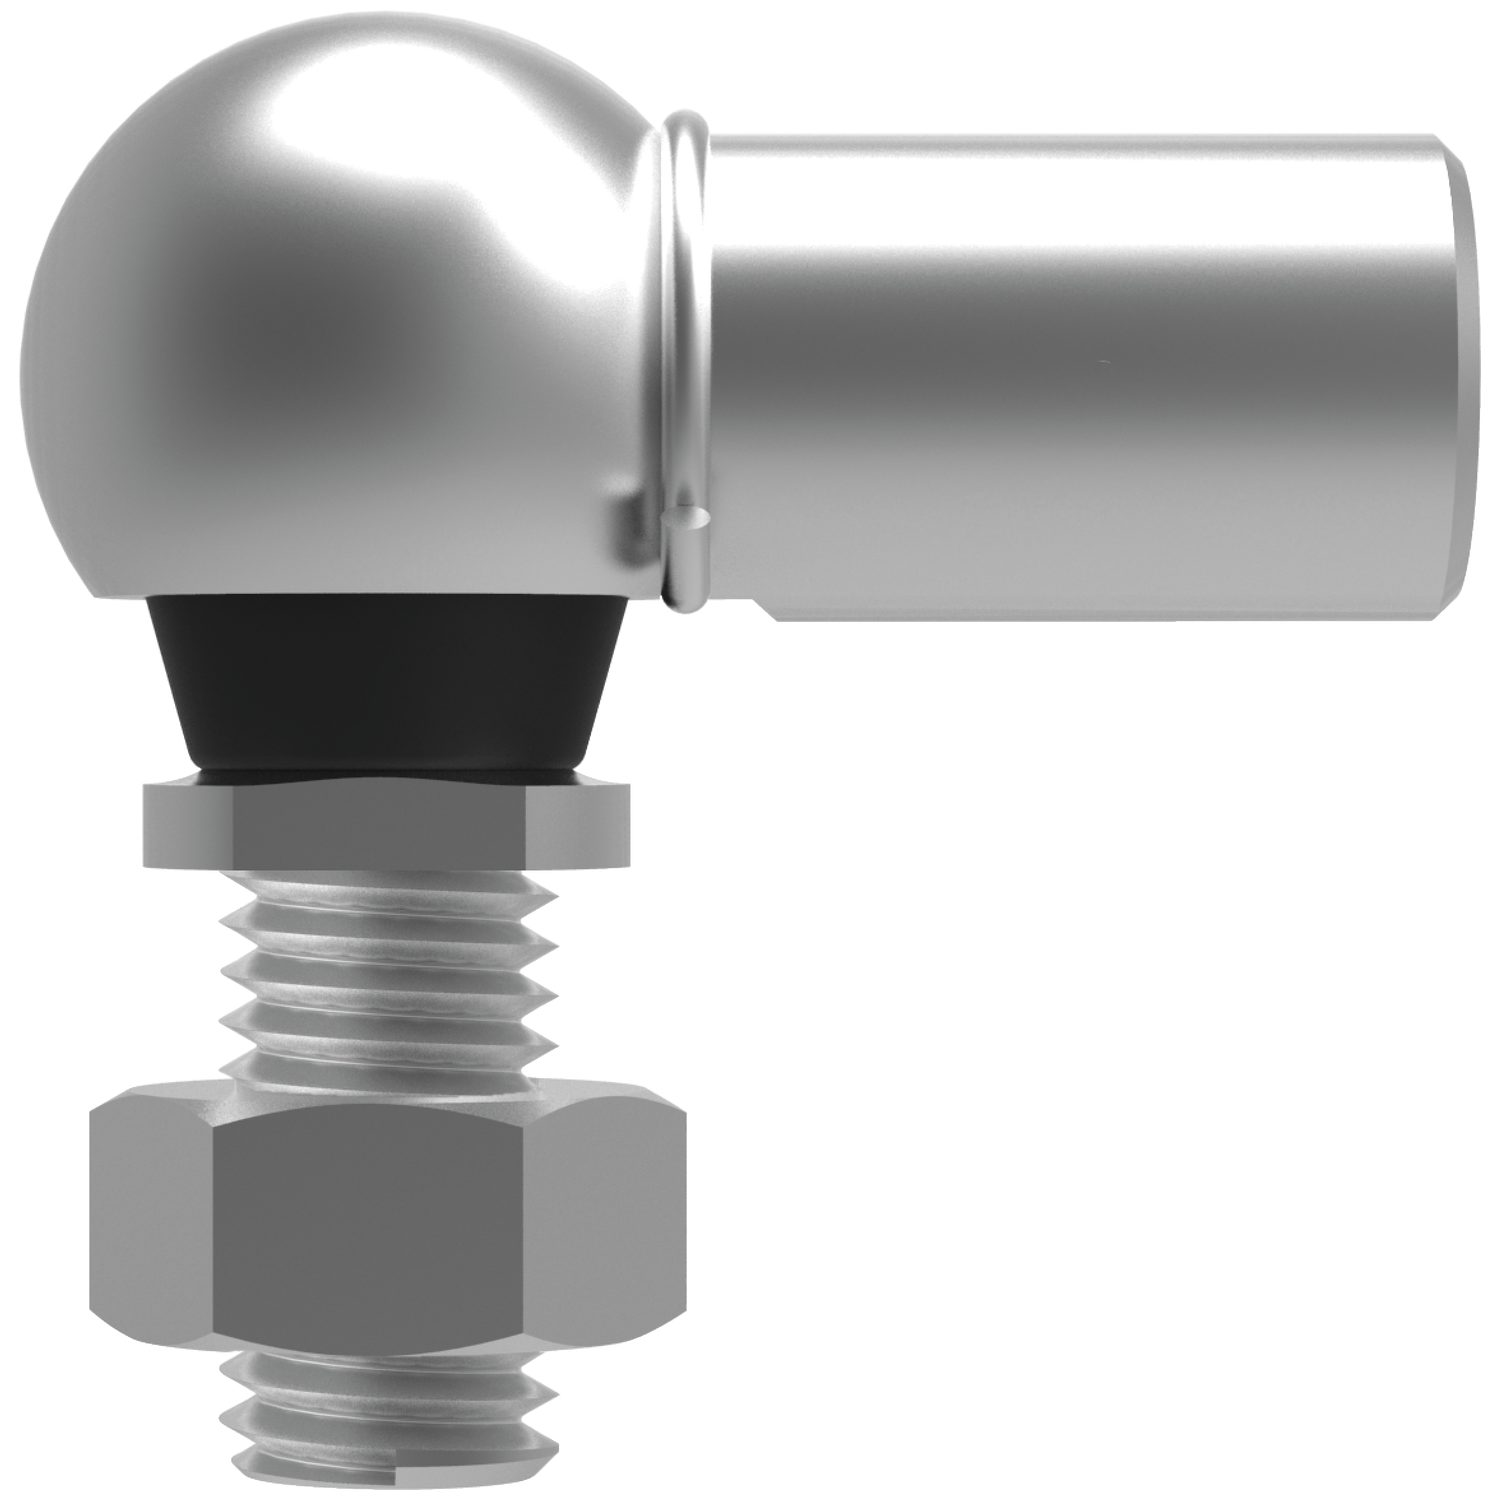 R3471 - Ball and Socket Joints